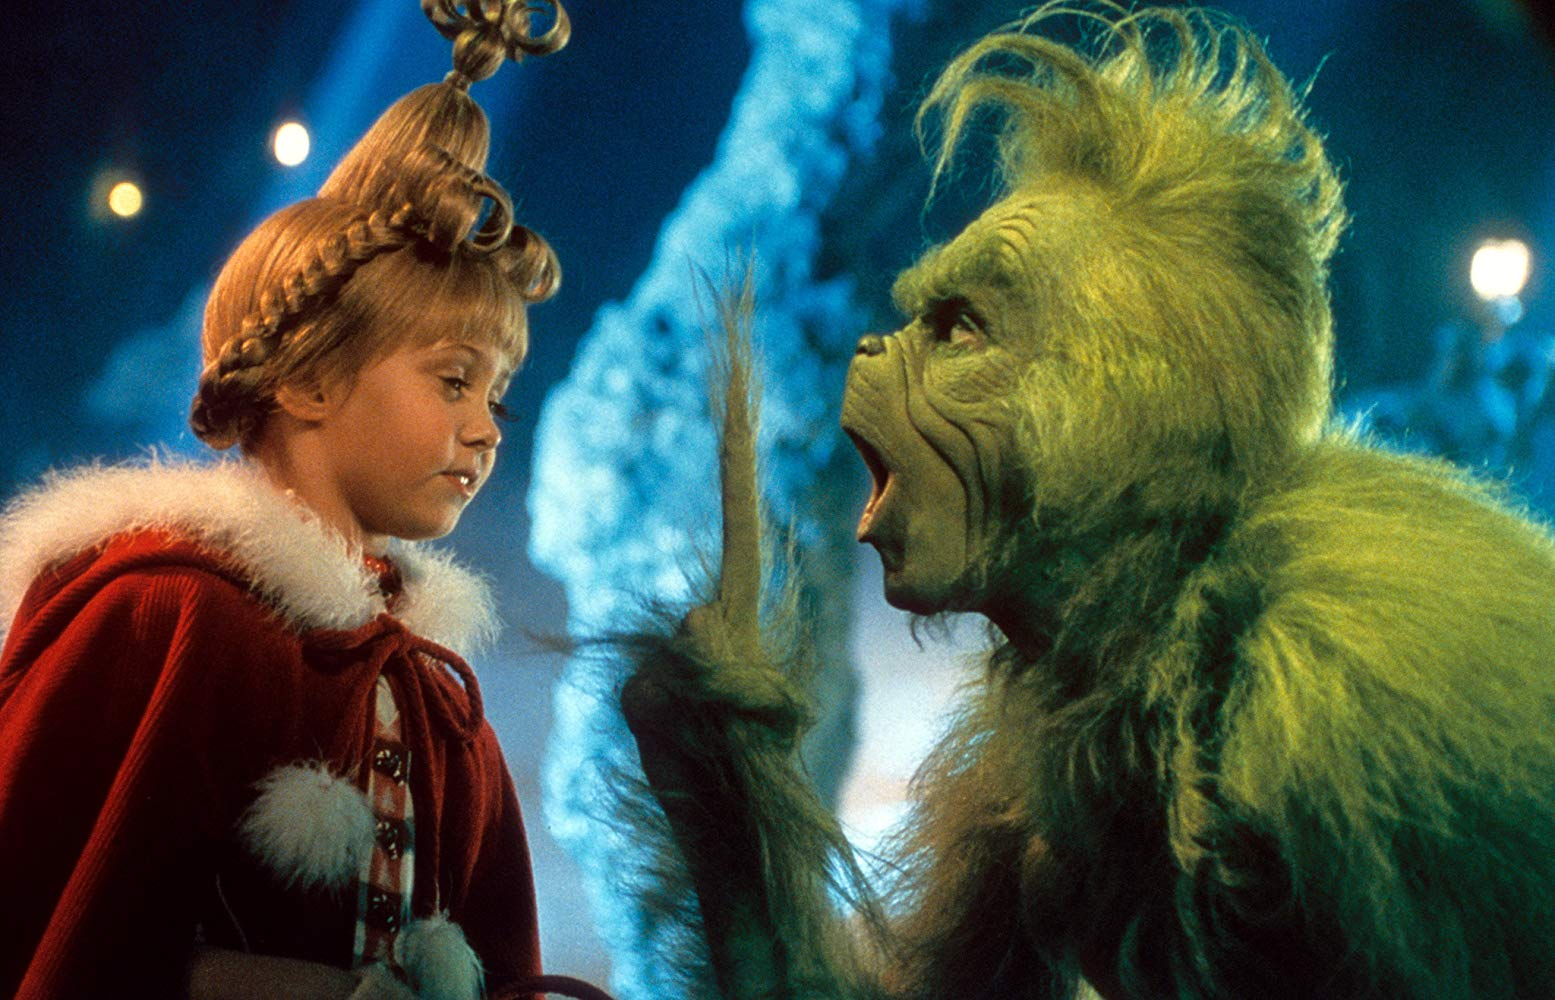 12 movies to watch on christmas 4.jpg